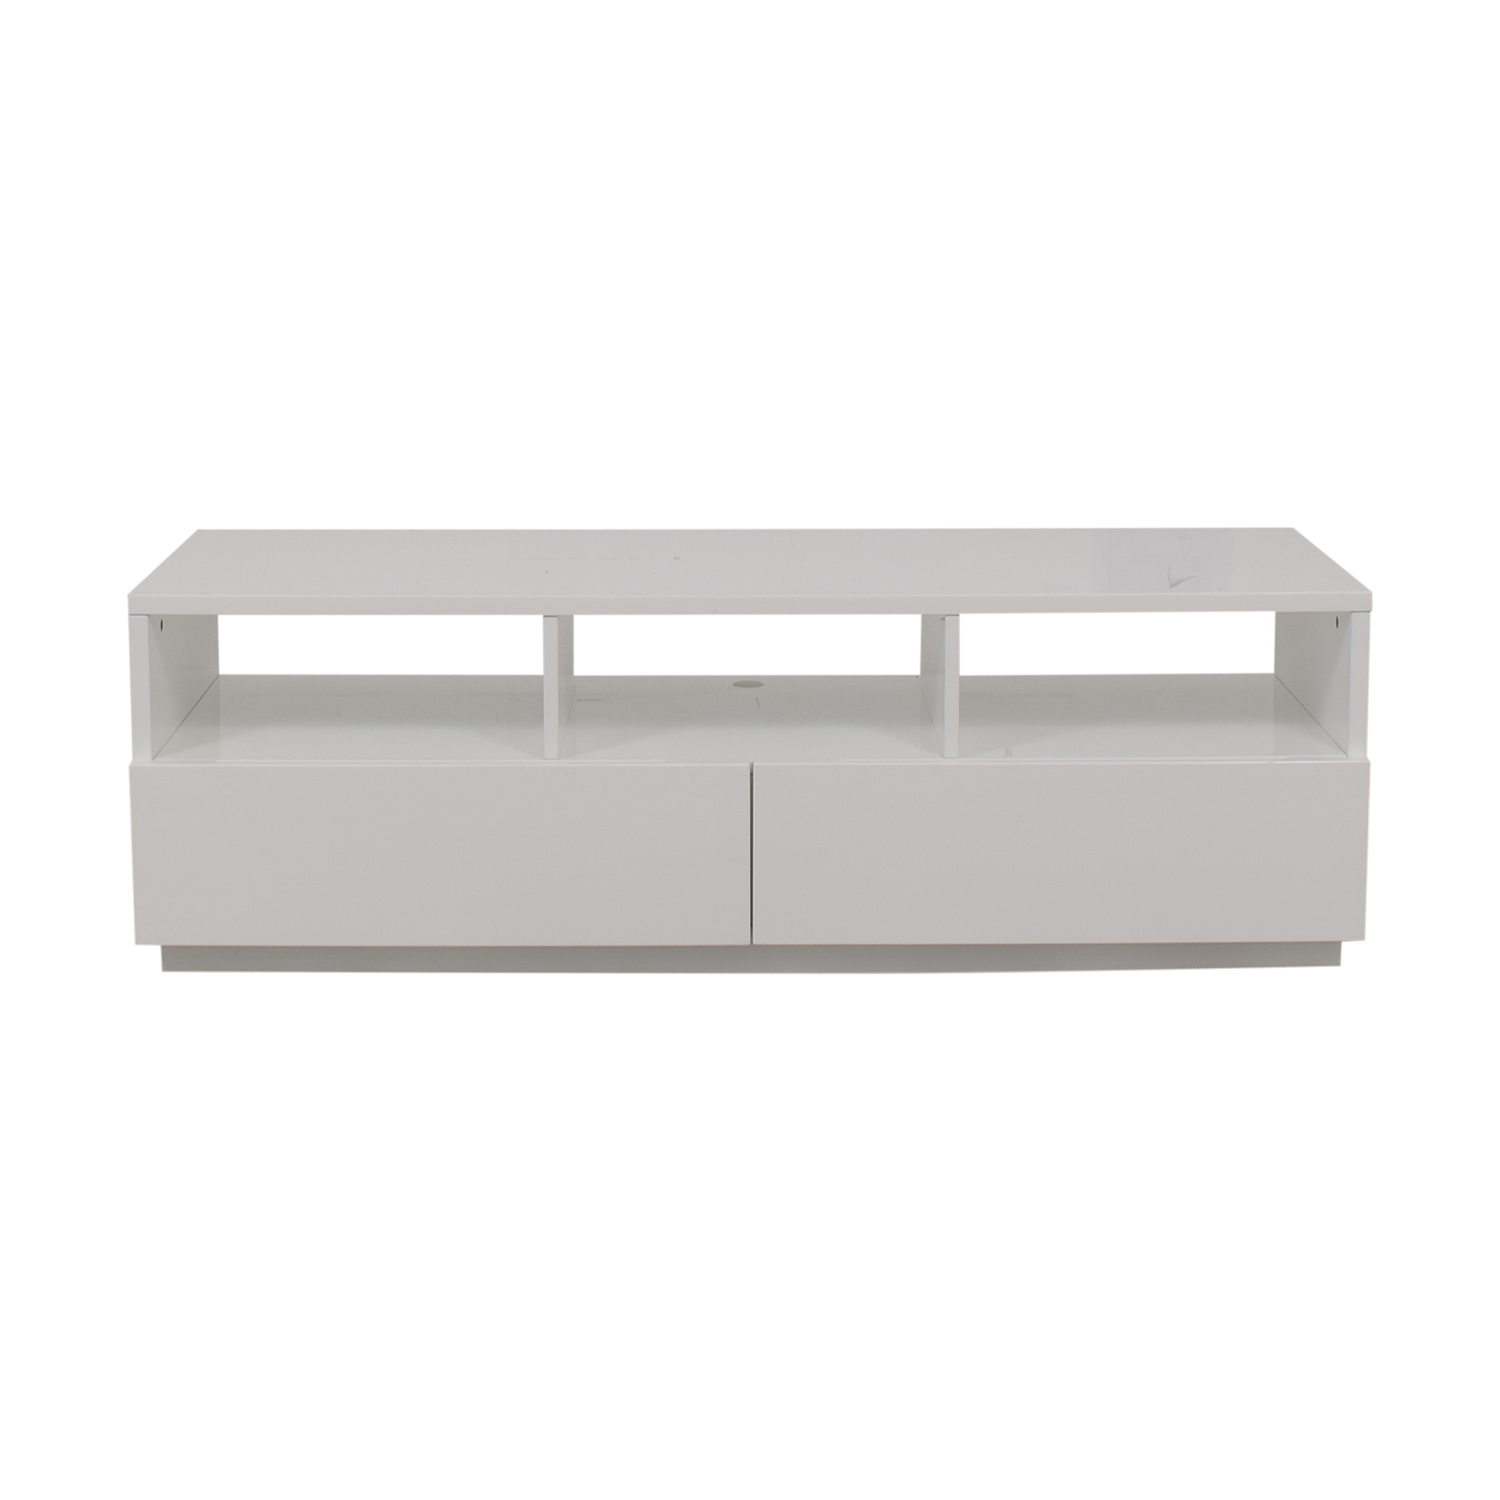 CB2 CB2 Chill White Two-Drawer Media Console on sale